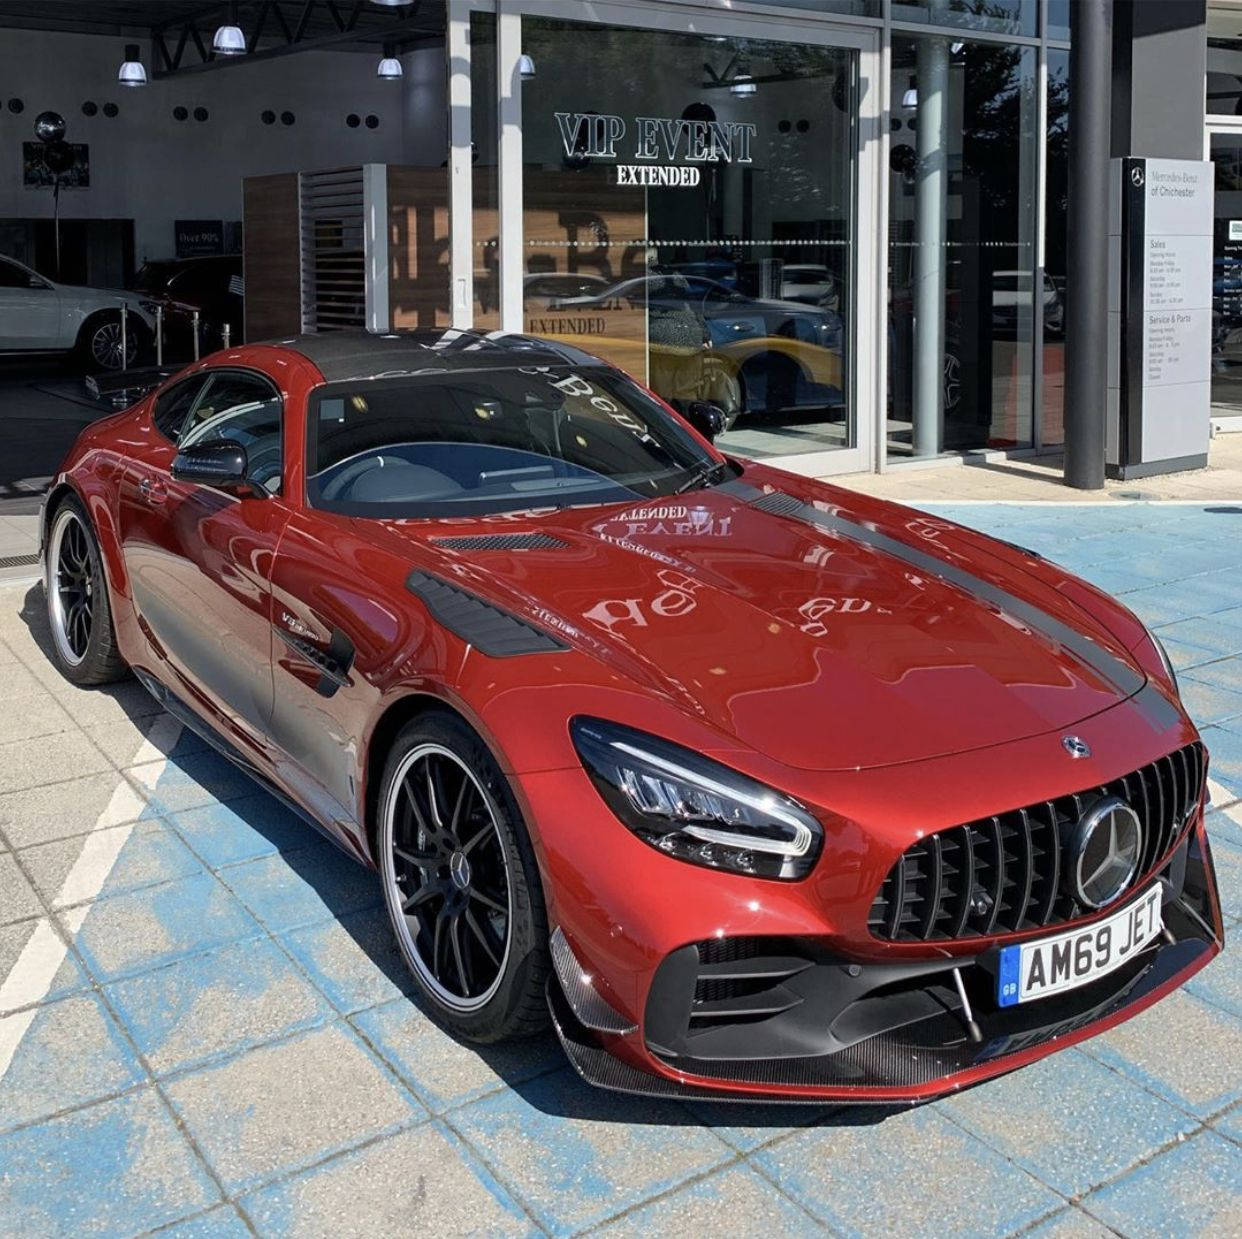 Mercedes Benz Amg Gtr Pro Painted In Hyacinth Red W Exposed